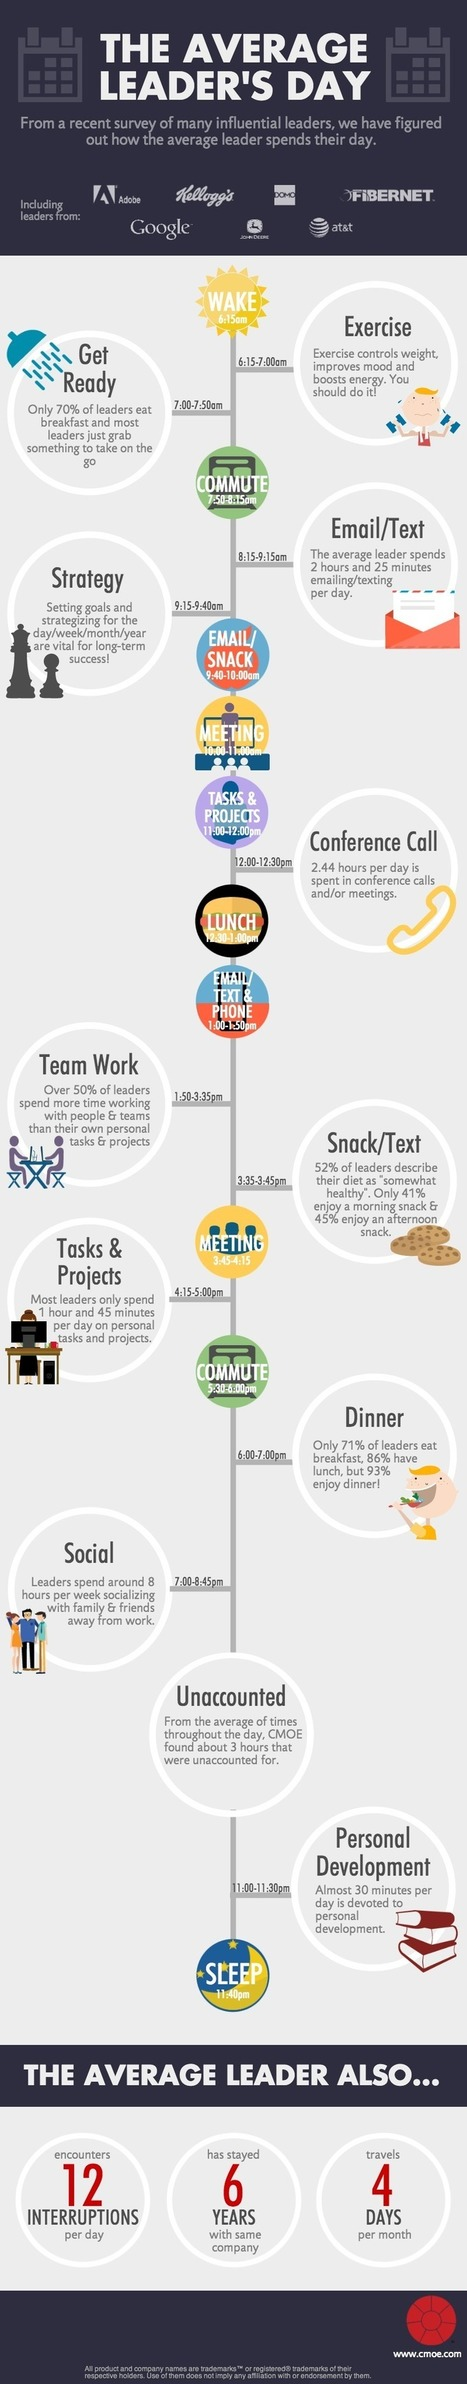 How Leaders Spend Their Time | Human Resources Leadership | Scoop.it